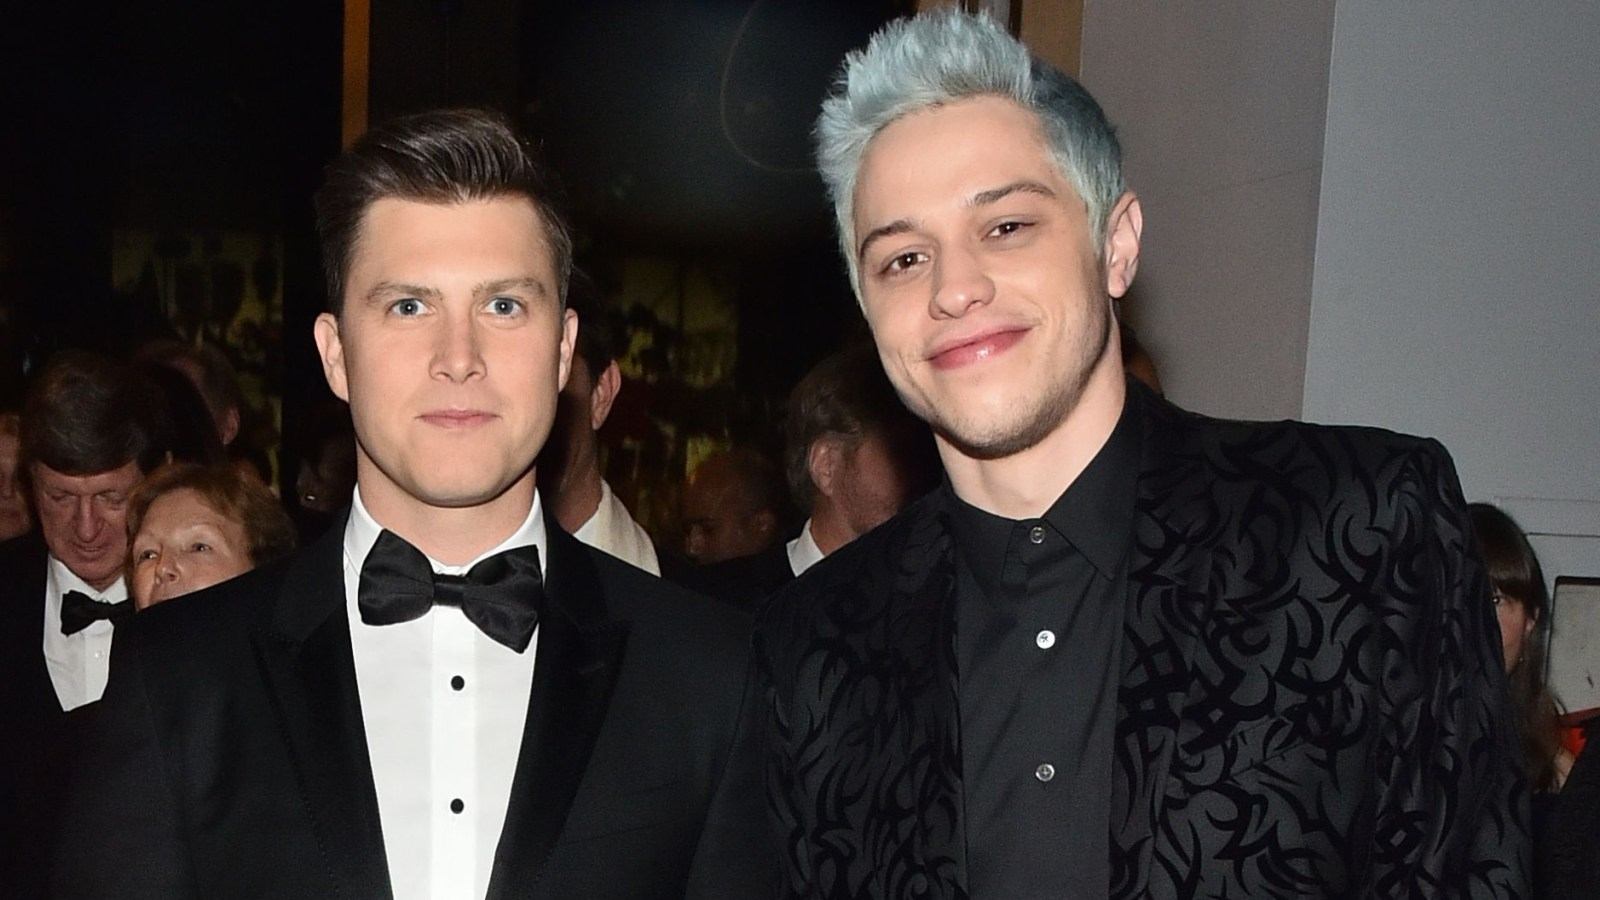 Snl S Pete Davidson Colin Jost To Costar In Comedy Movie Worst Man